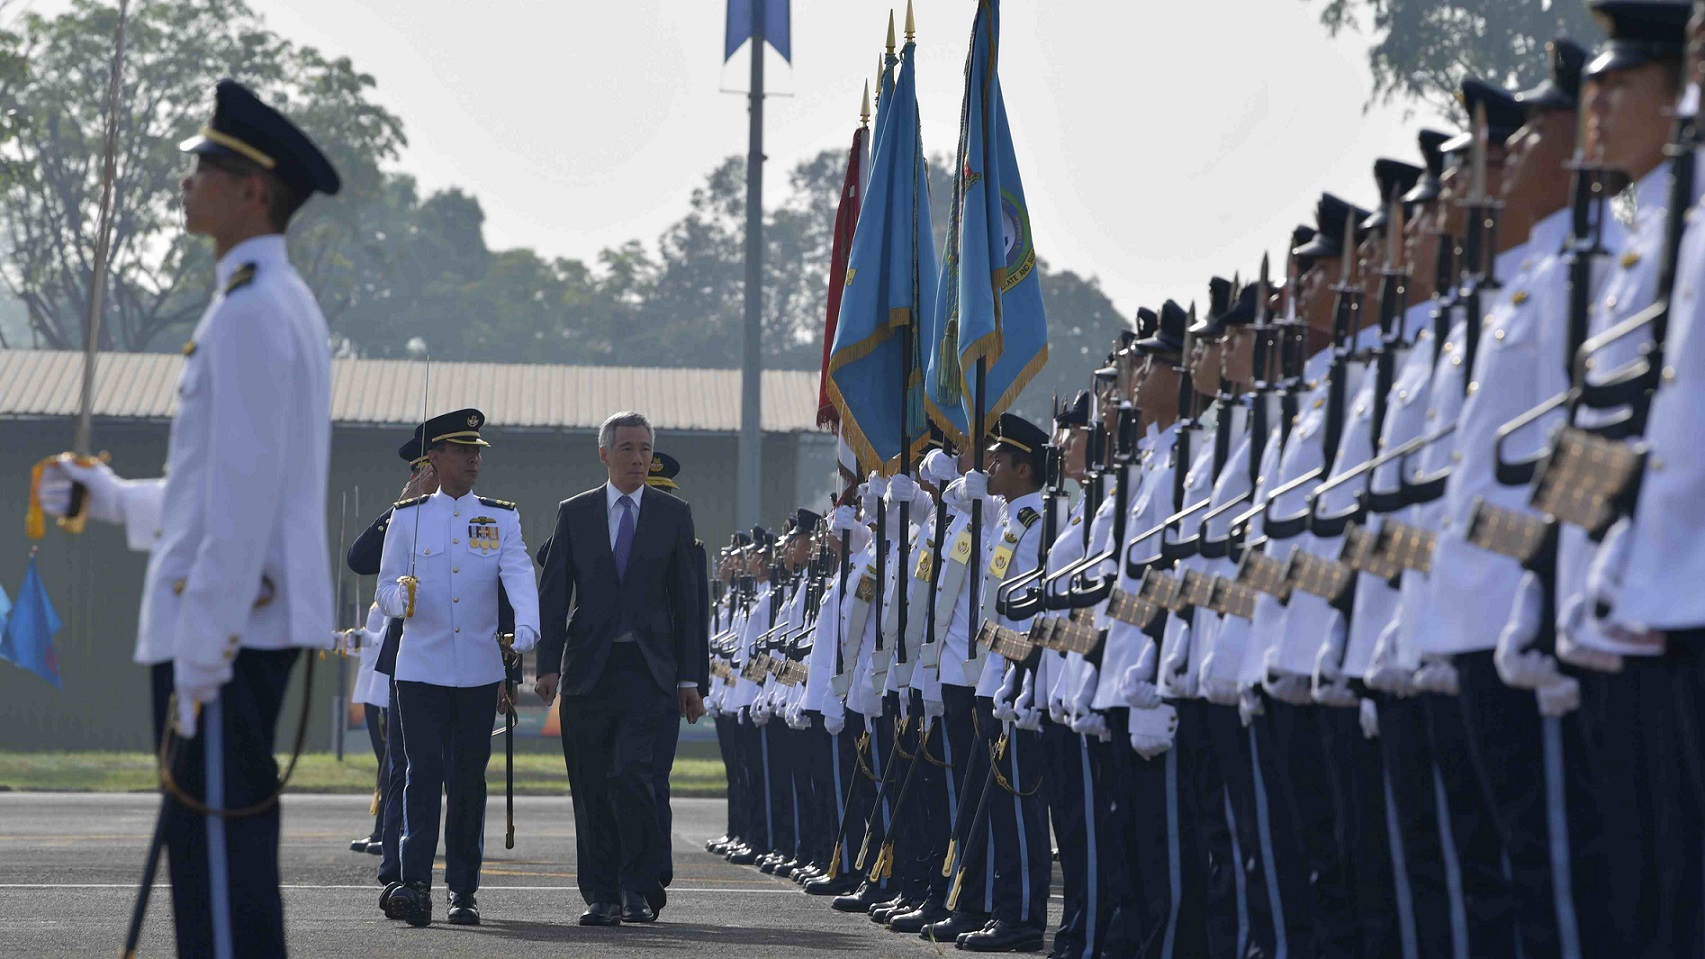 Prime-Minister-Lee-Hsien-Loong-Officiates-the-Republic-of-Singapore-Air-Force-Golden-Jubilee-Parade